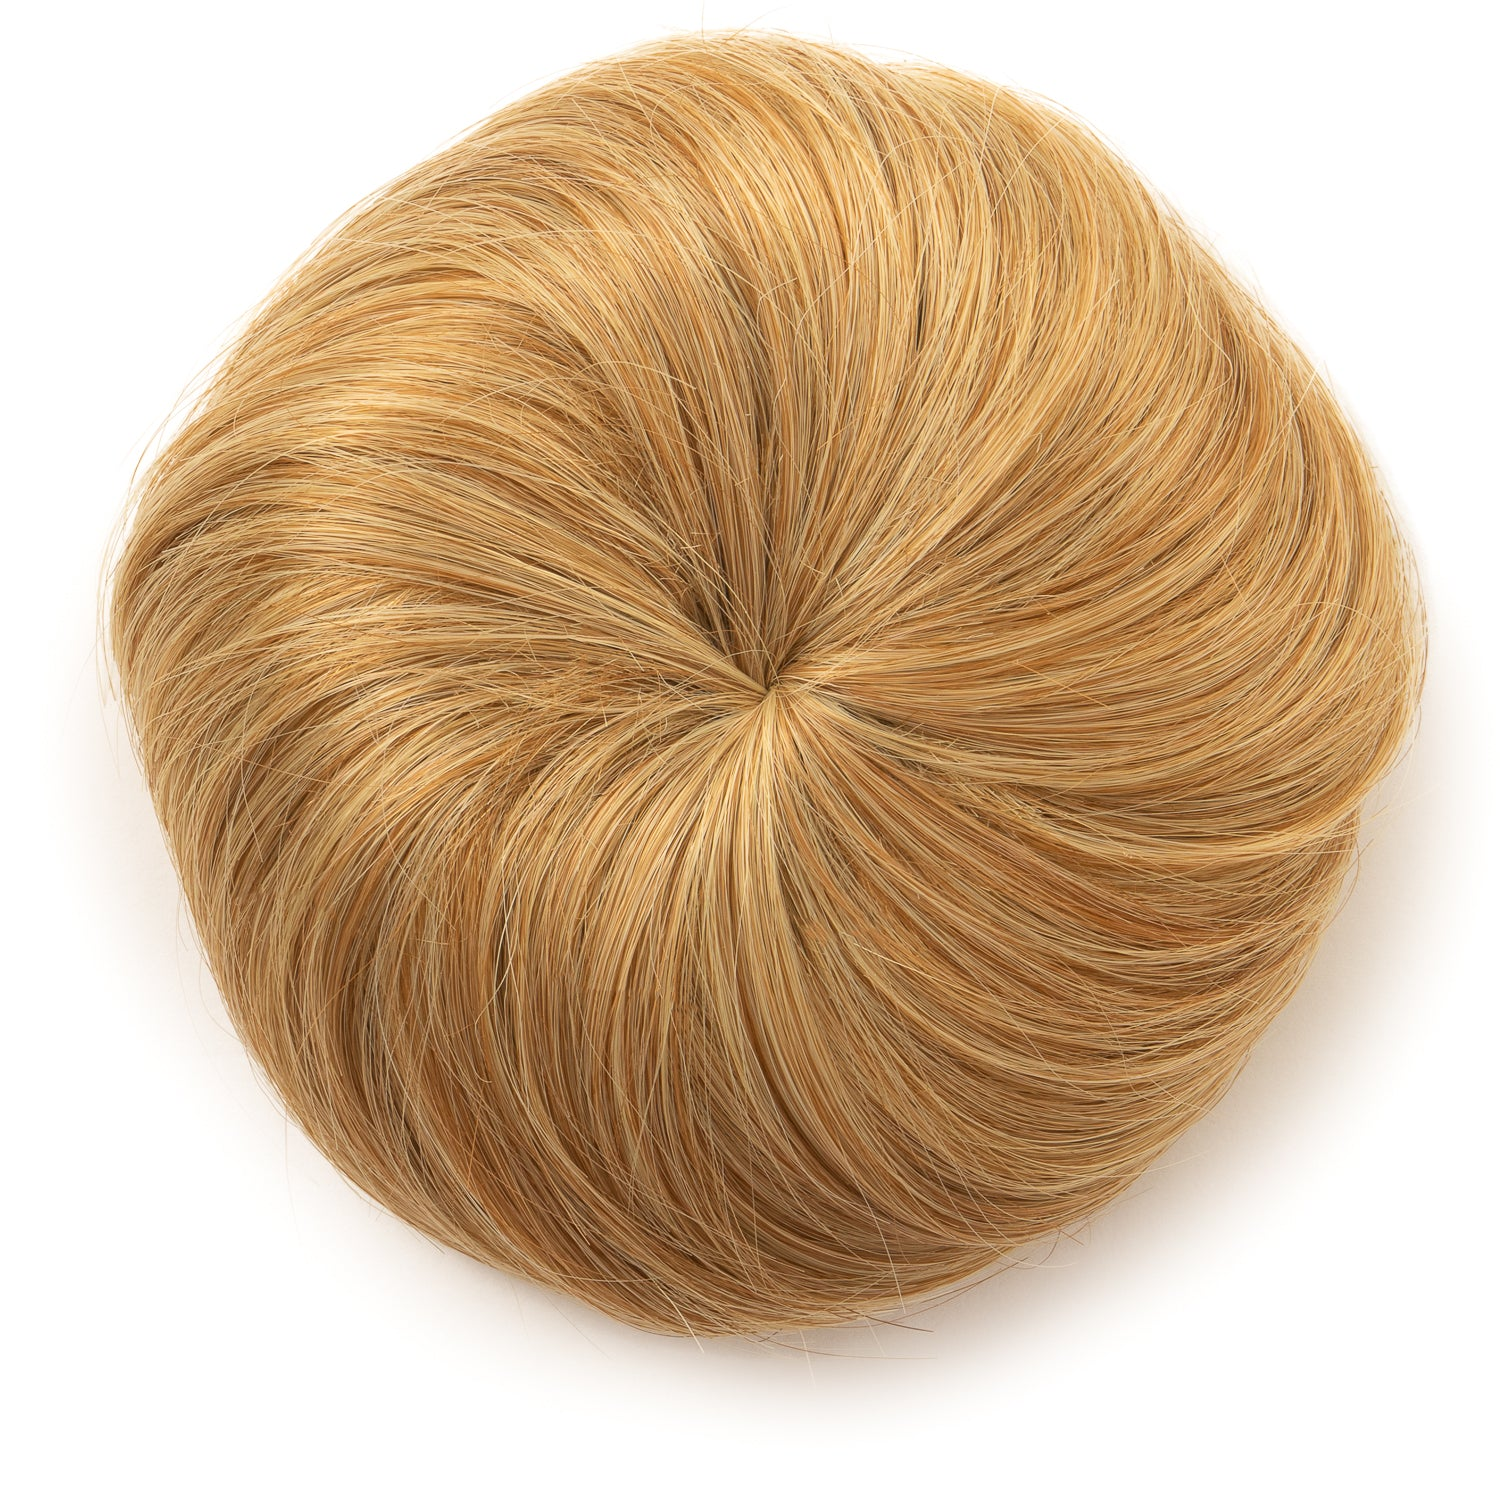 The Spotlight bun -  Sand & Vanilla. (379579812)